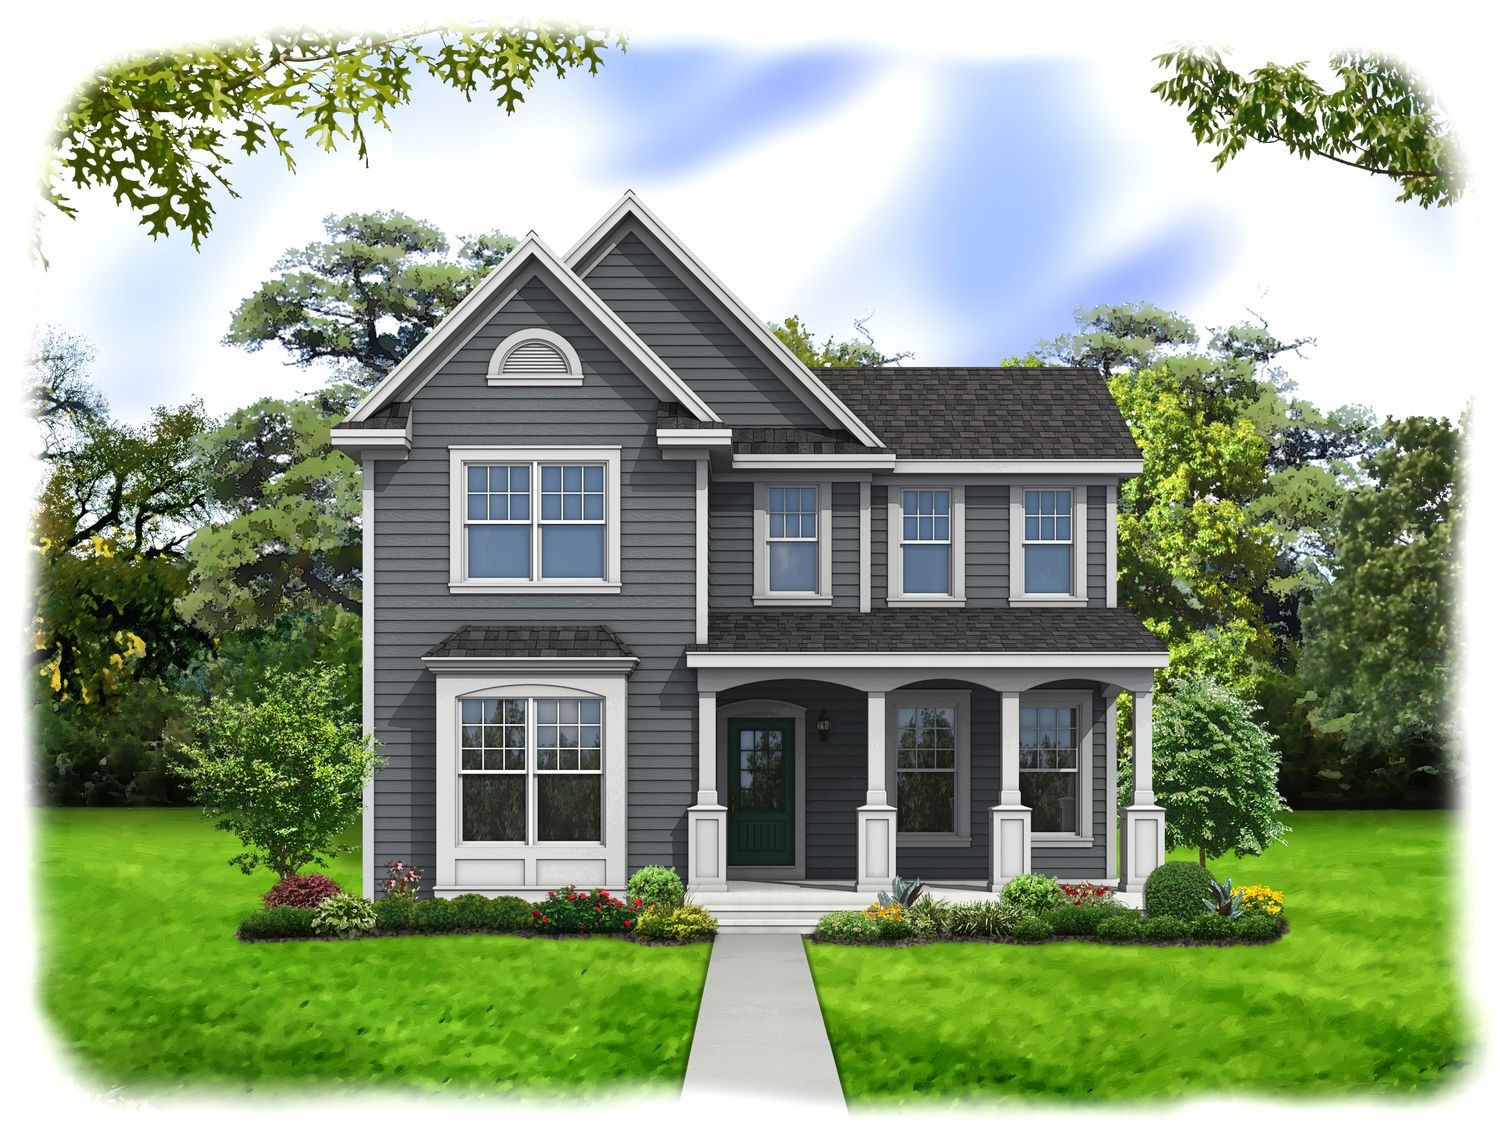 Ready To Build Home In The Villages at Brightleaf - Hallmark Community